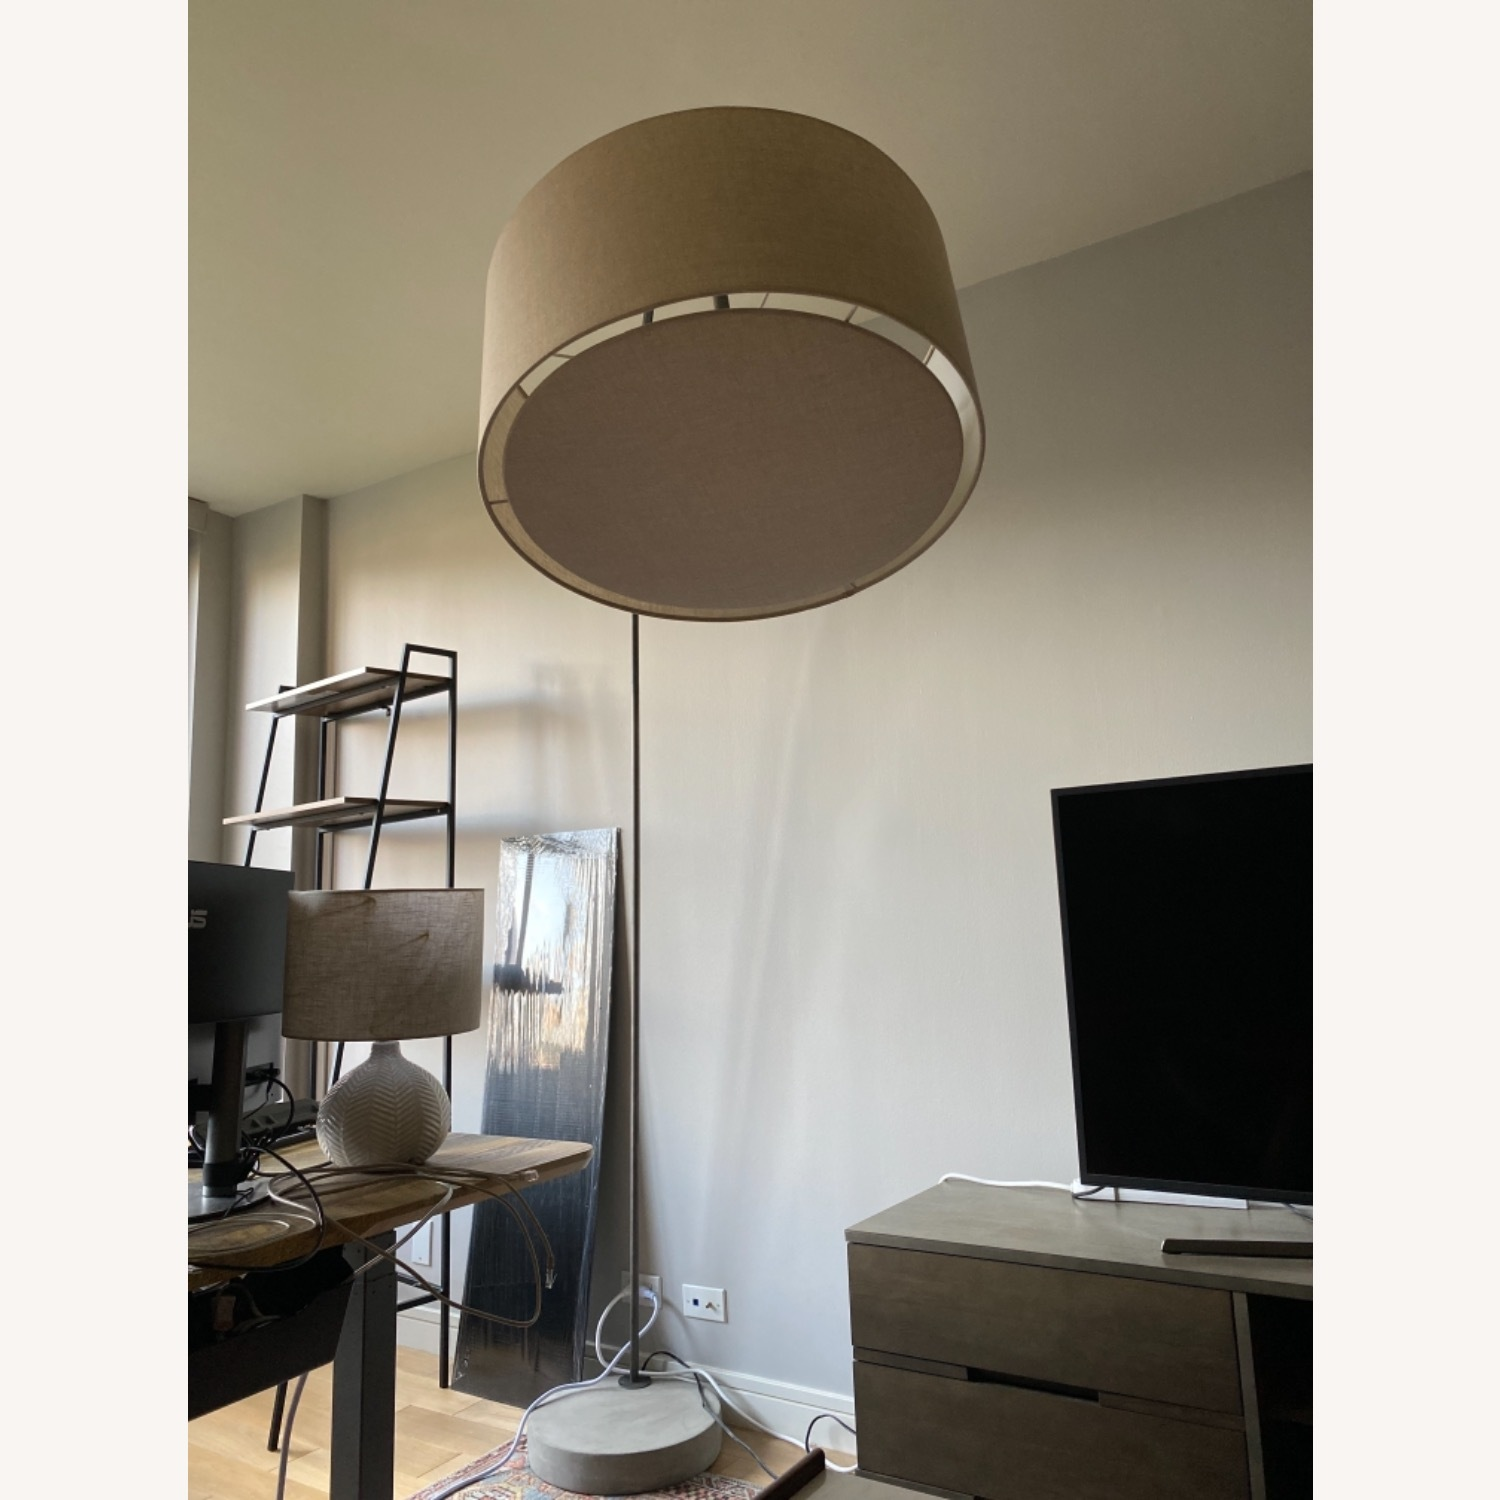 CB2 Arched Floor Lamp Beige Shade Concrete Base - image-2